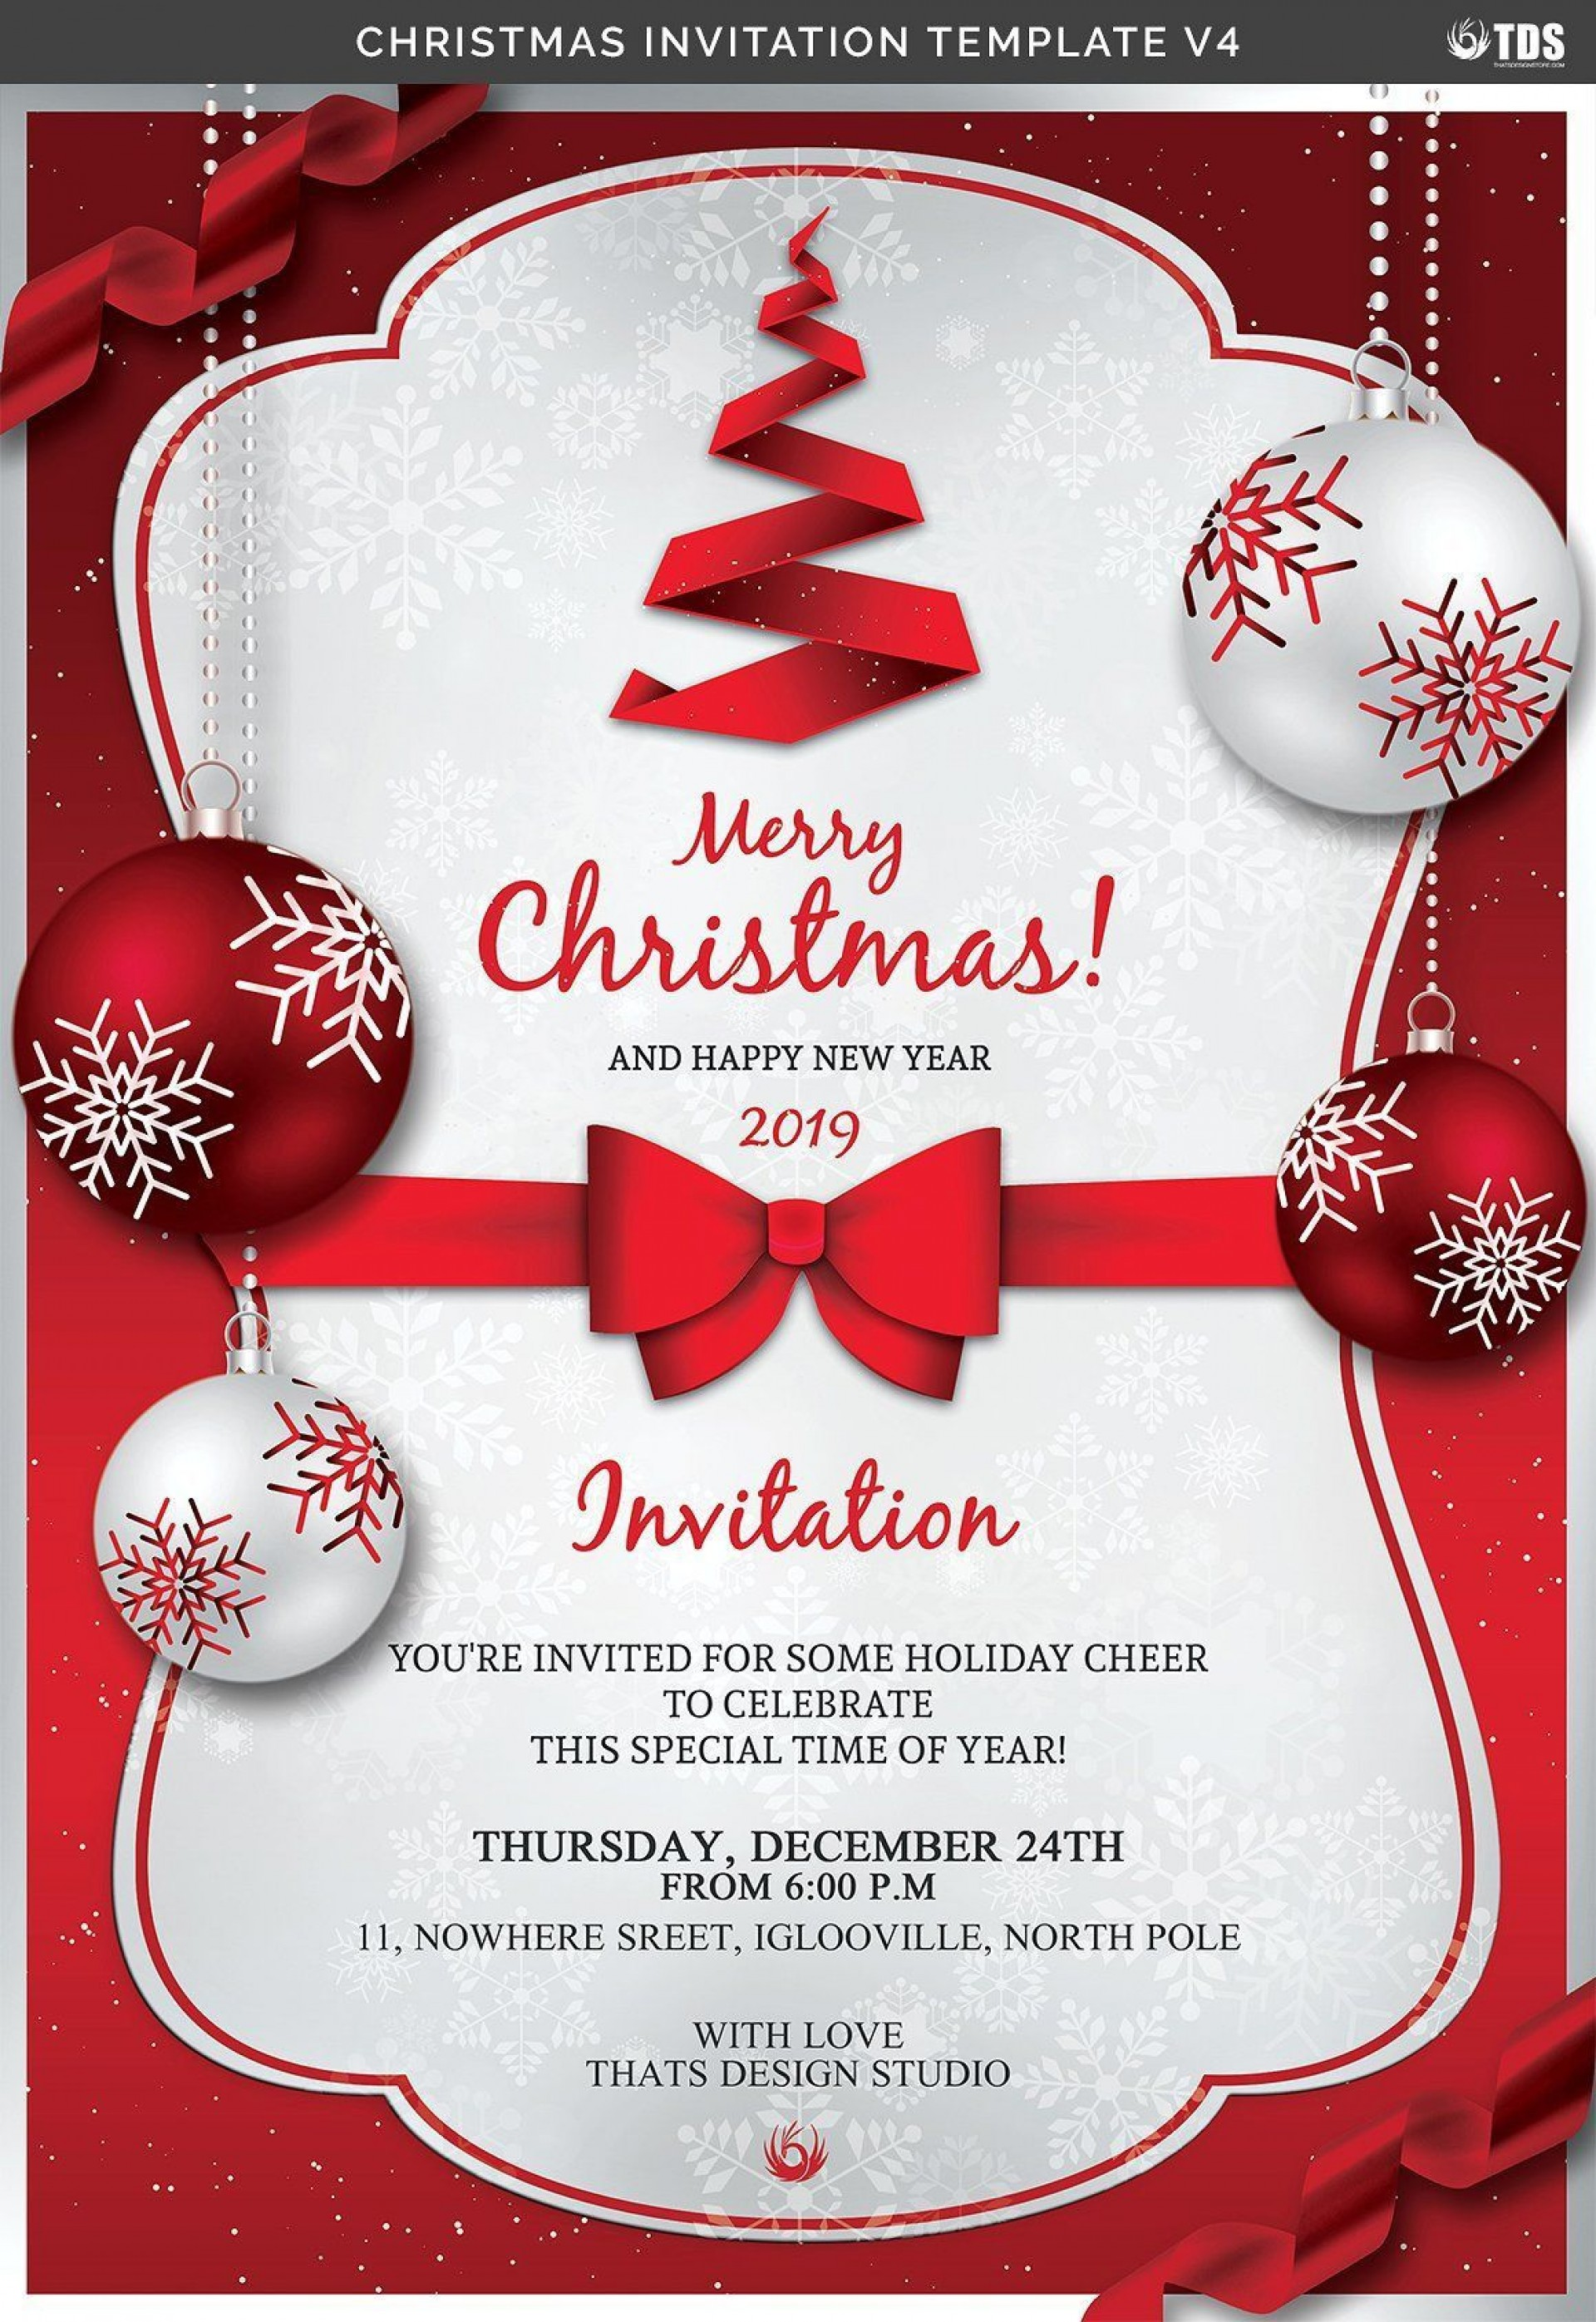 006 Remarkable Christma Party Flyer Template Free Design  Company Invitation Printable Word1920